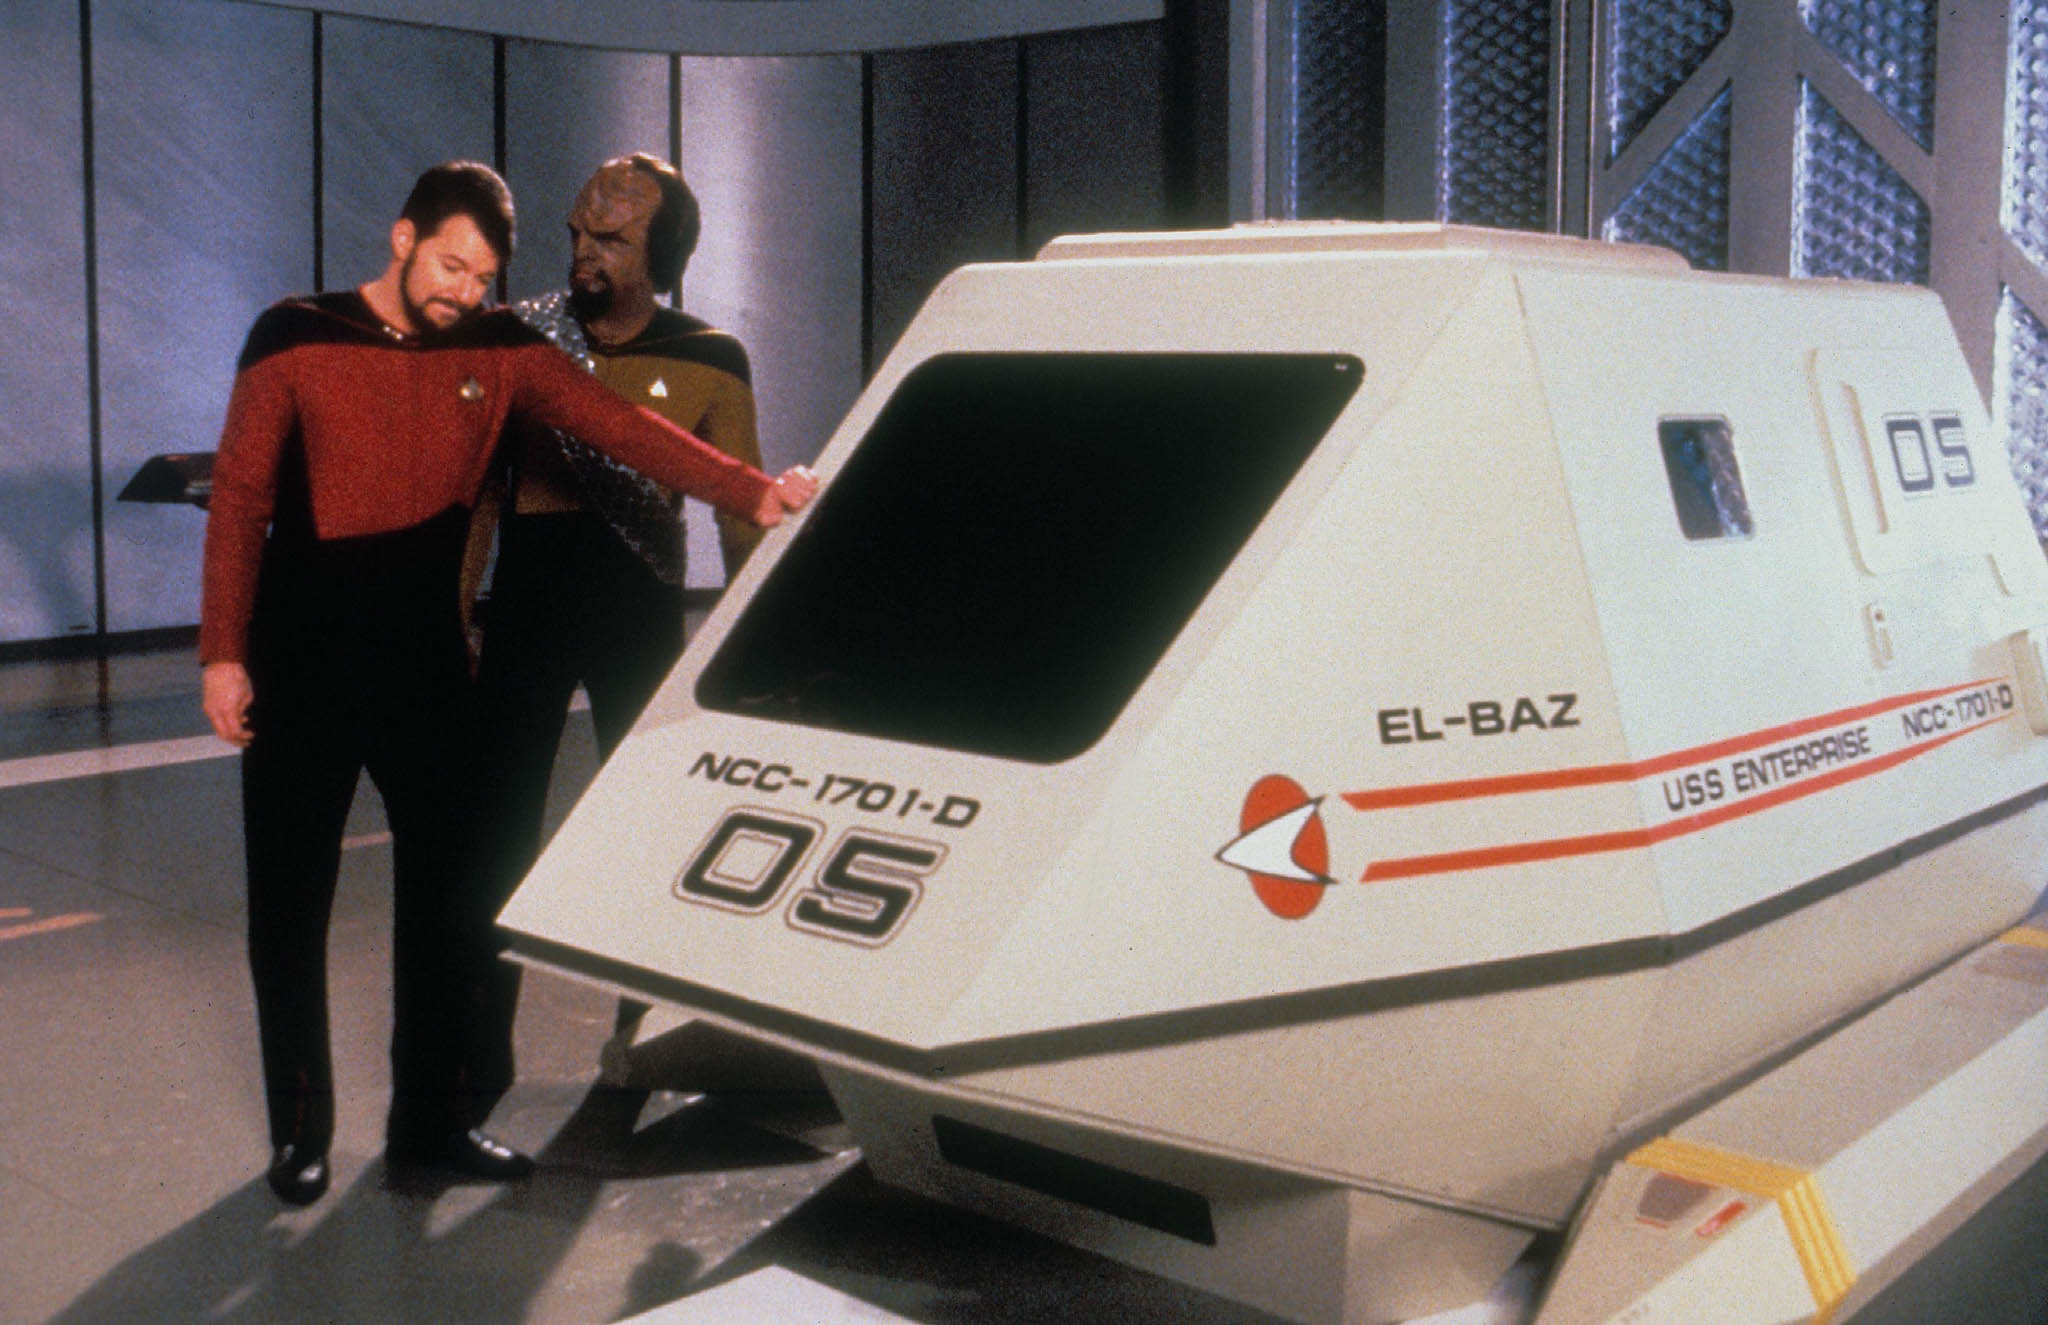 Actors Jonathan Frakes and Michael Dorn in costume, standing next to a shuttlepod (Alamy)